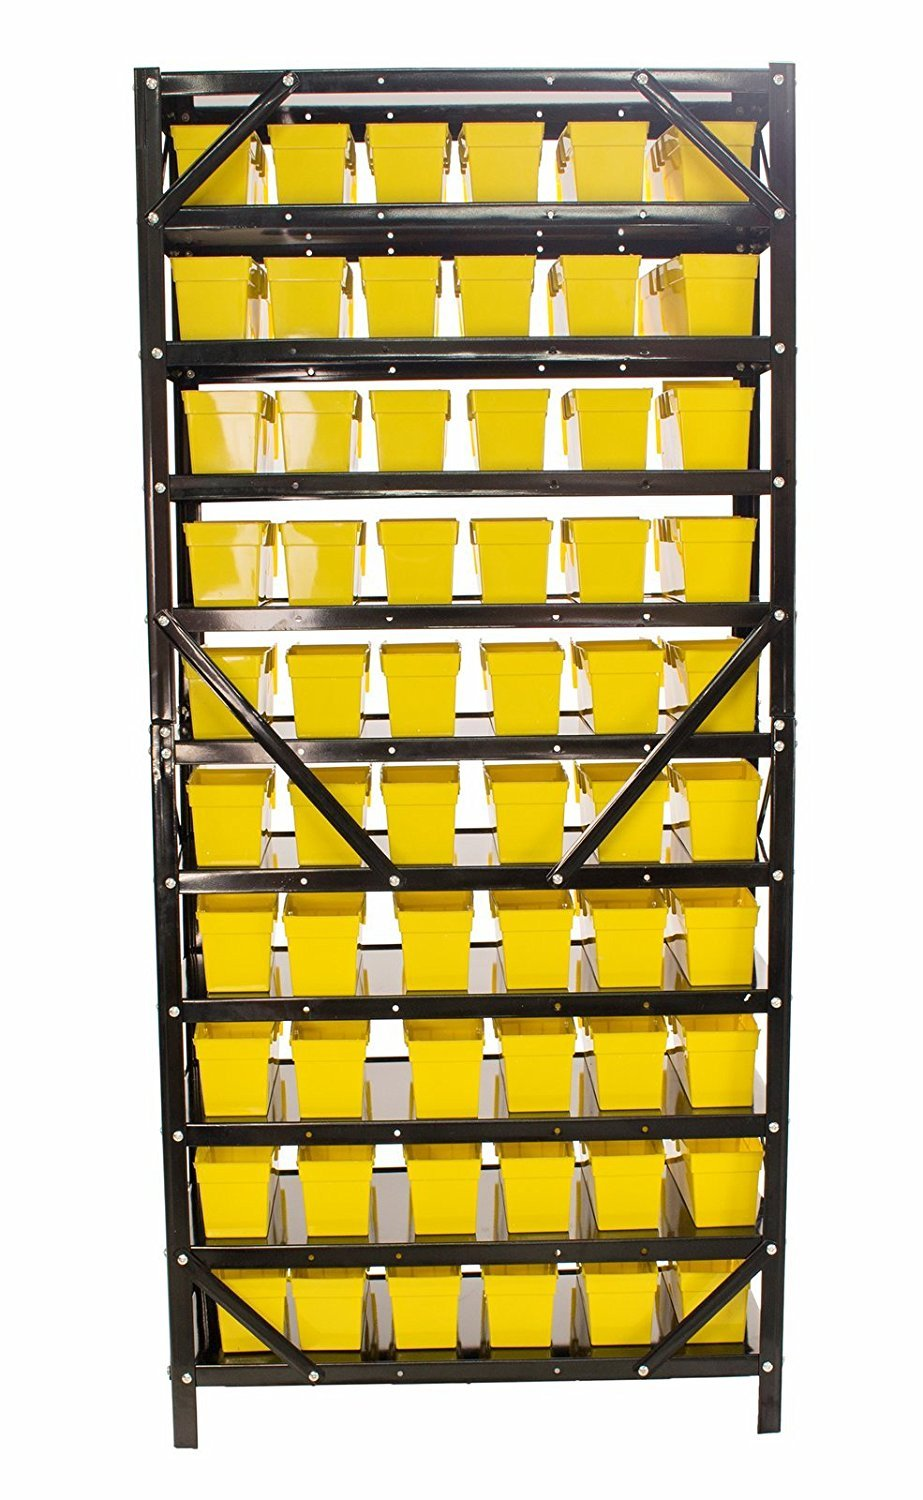 60 Bin Parts Rack easily Organize Nuts, Bolts, or Parts, Removable ...